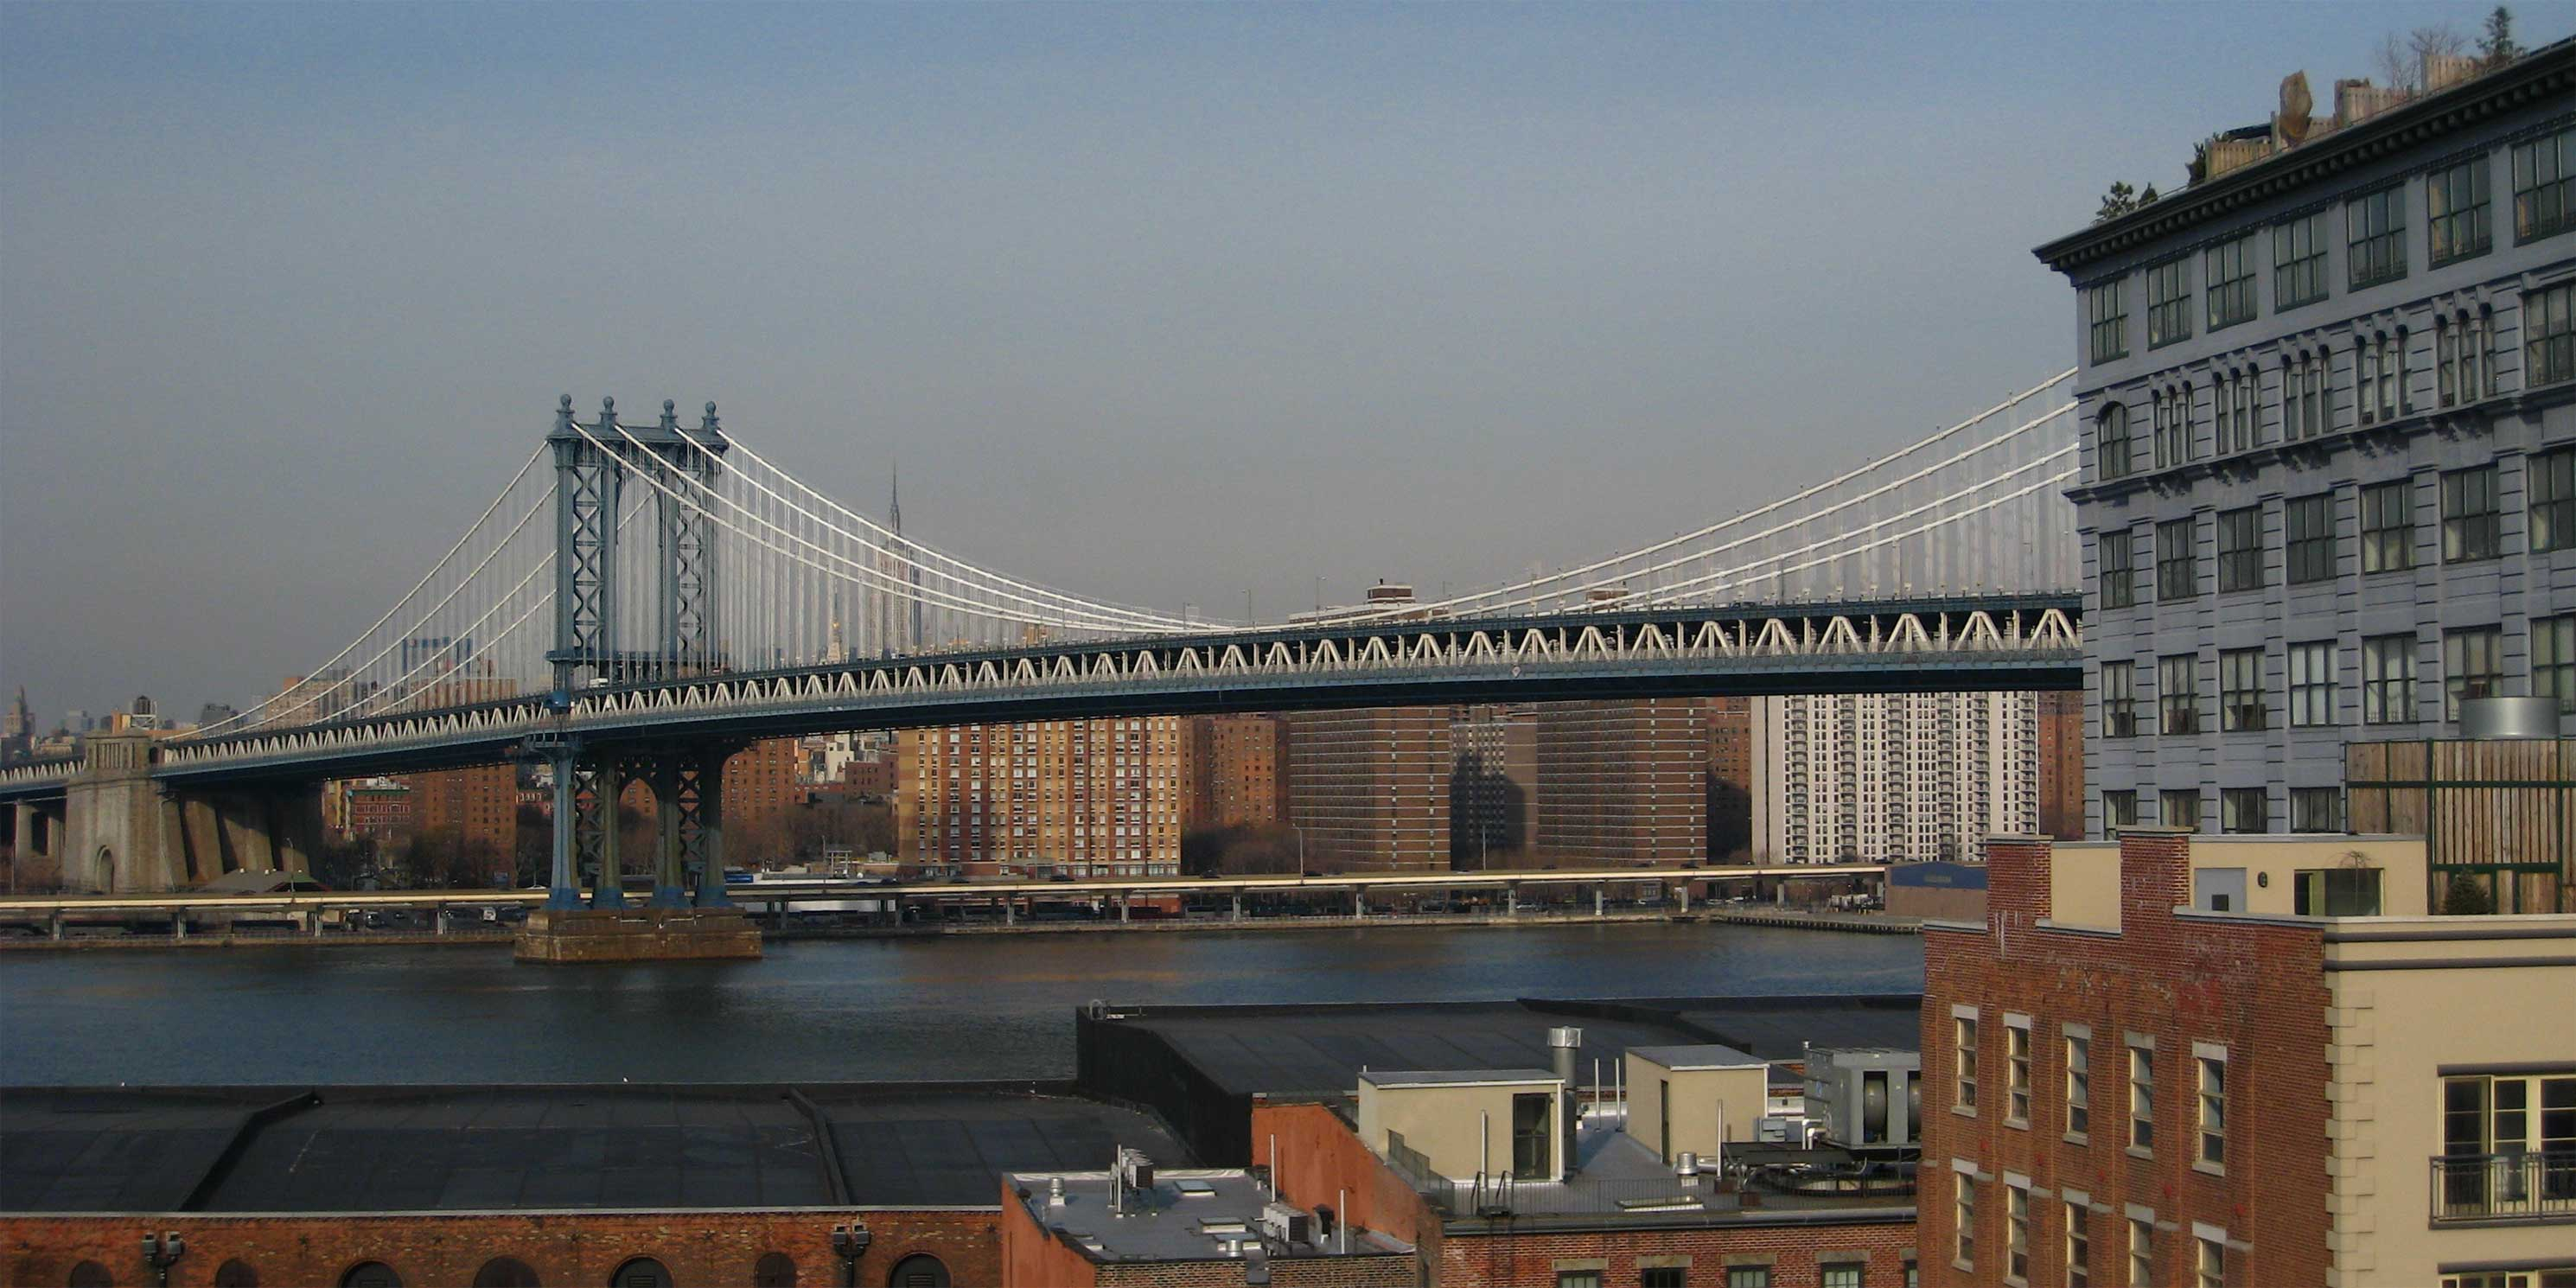 The Manhattan Bridge with DUMBO in the foreground